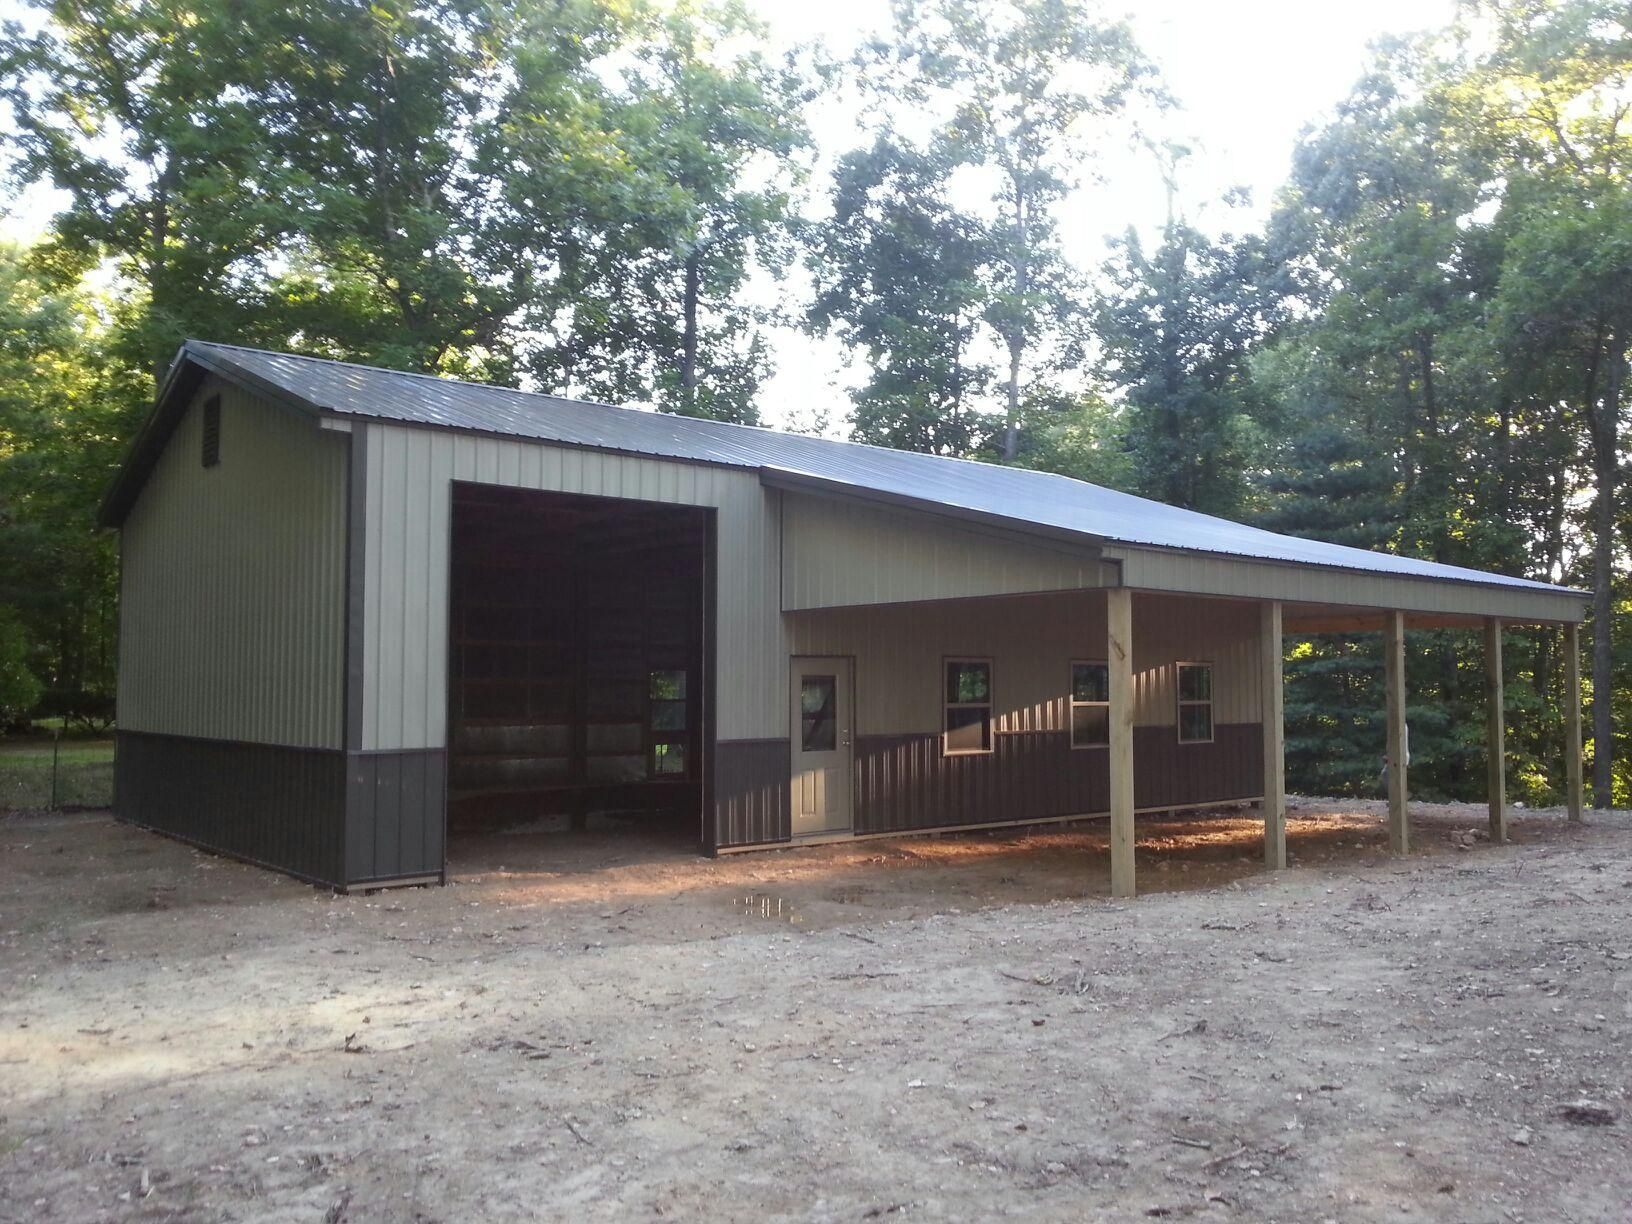 30x48x14 With 16x32 Shed Post Frame Building Www Nationalbarn Com Shed Building Plans Building A Shed Shed